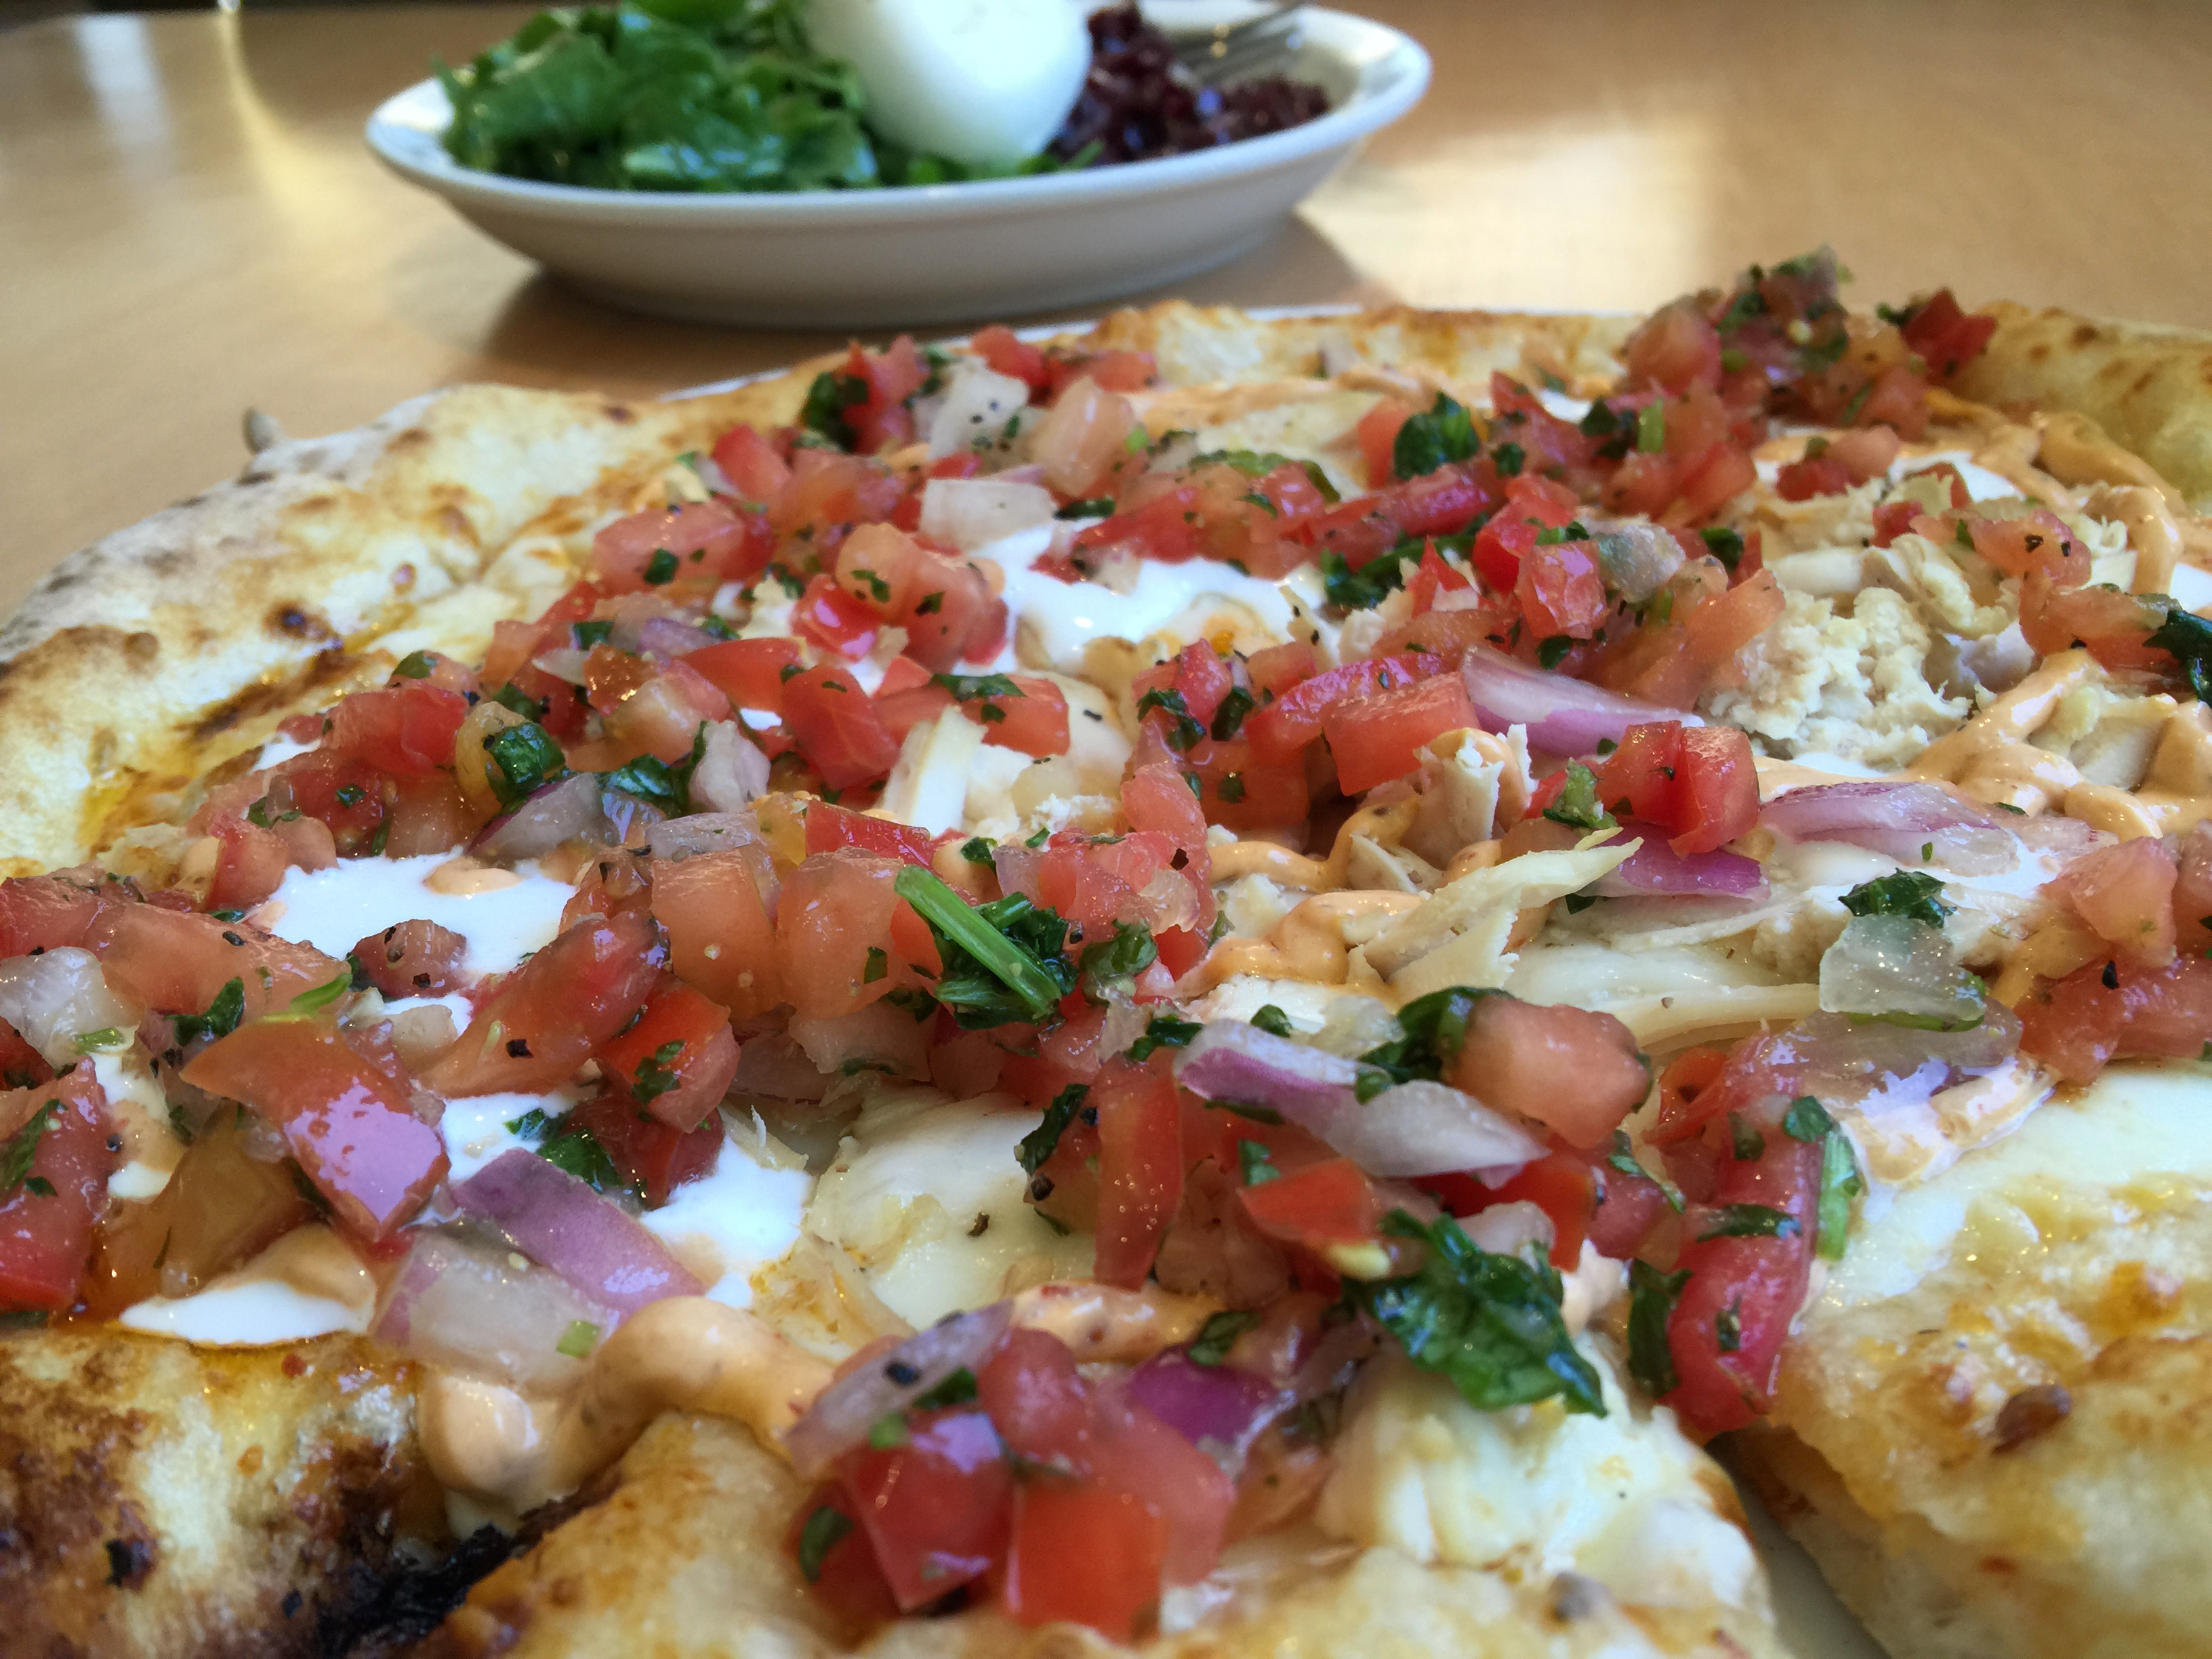 Persona vs. Pieology: An Epic Battle of the Fast Casual DIY Pizza Chains